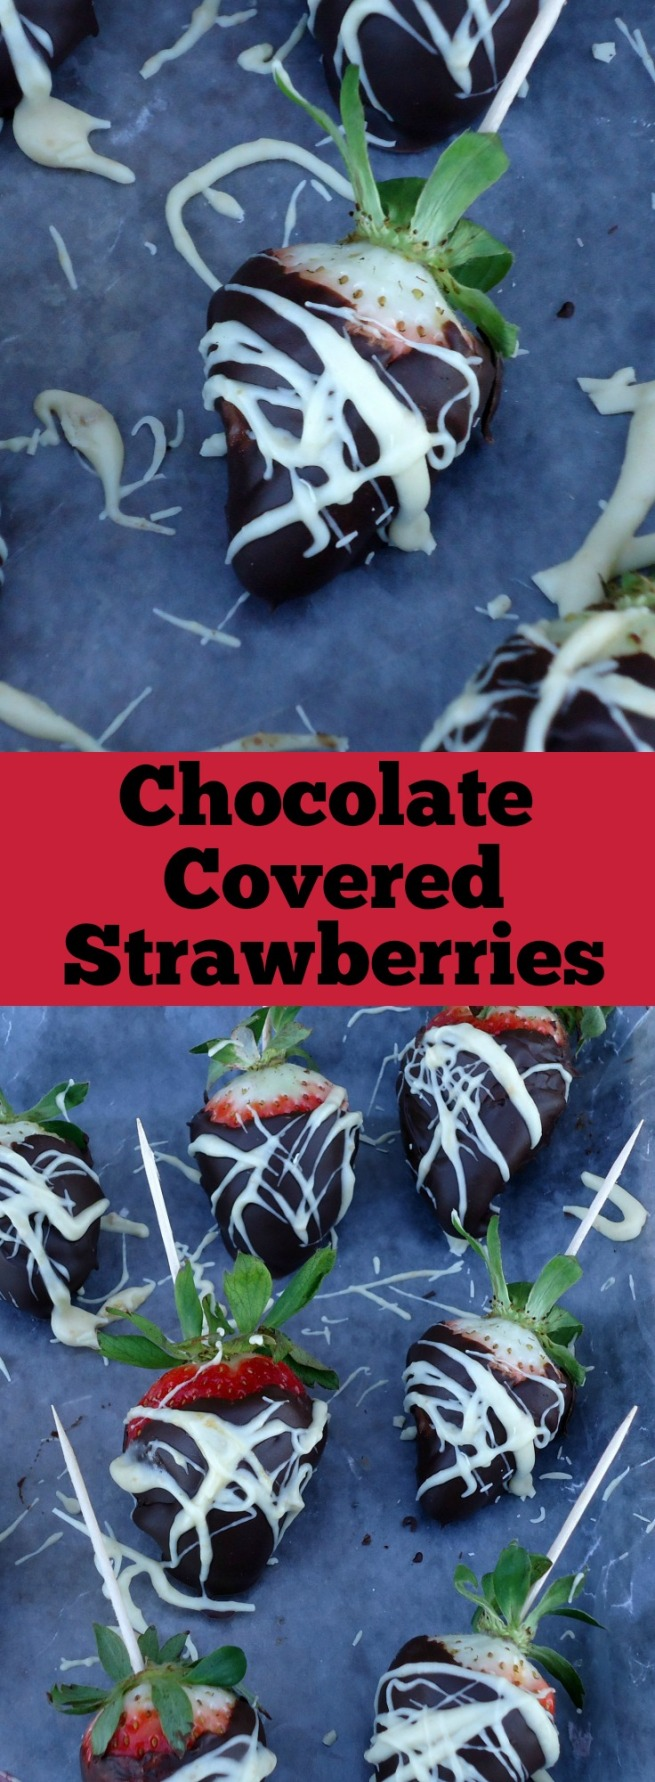 Chocolate Covered Strawberries --- Unwed Housewife